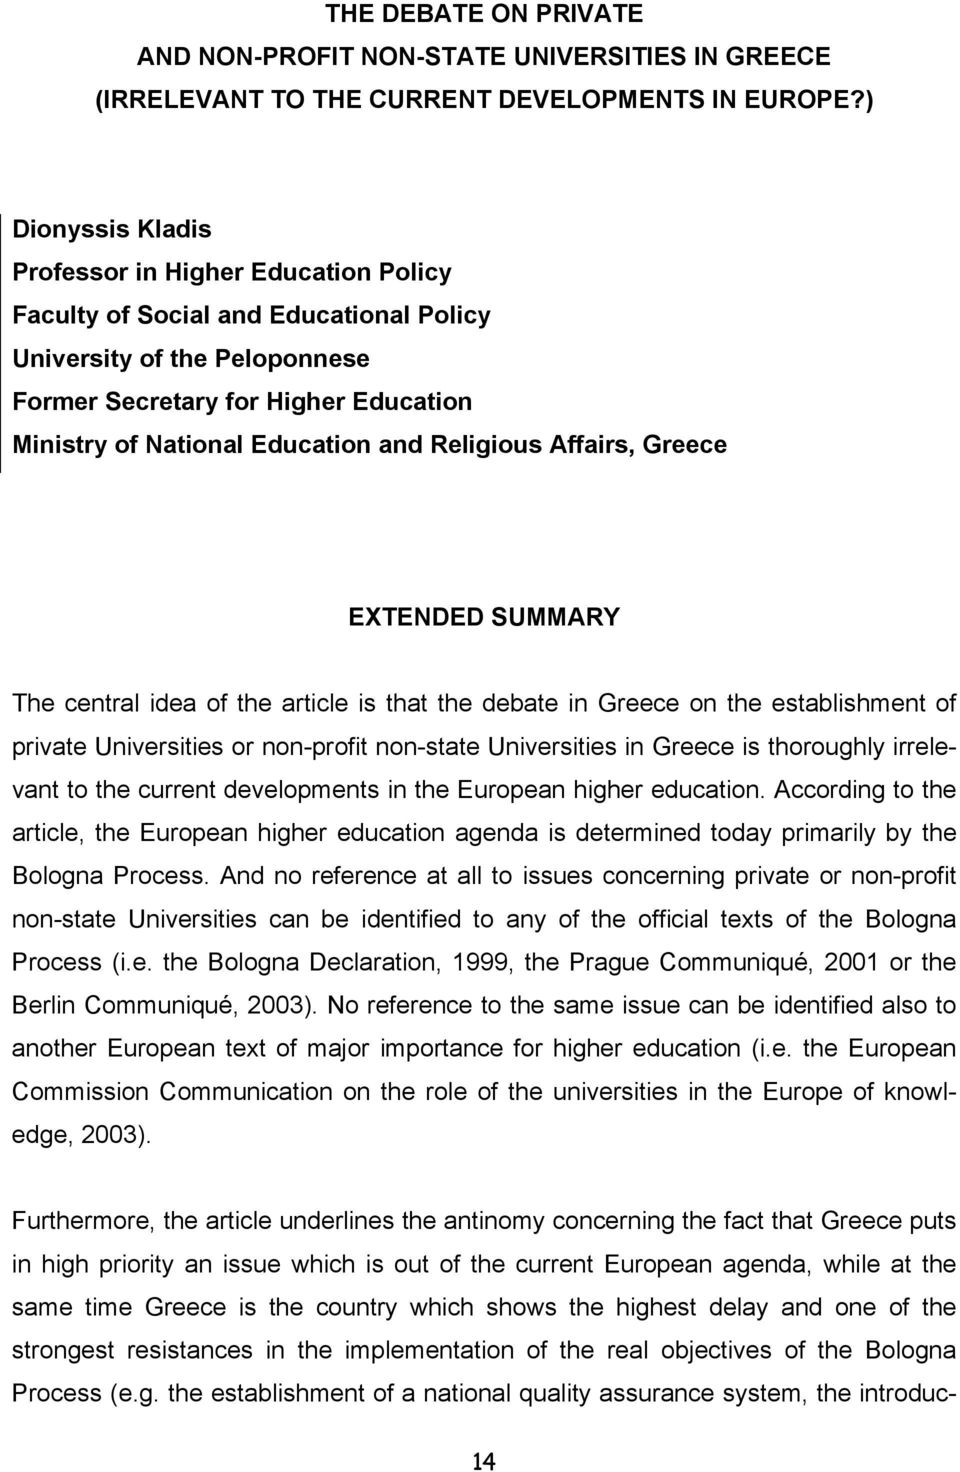 Religious Affairs, Greece EXTENDED SUMMARY The central idea of the article is that the debate in Greece on the establishment of private Universities or non-profit non-state Universities in Greece is